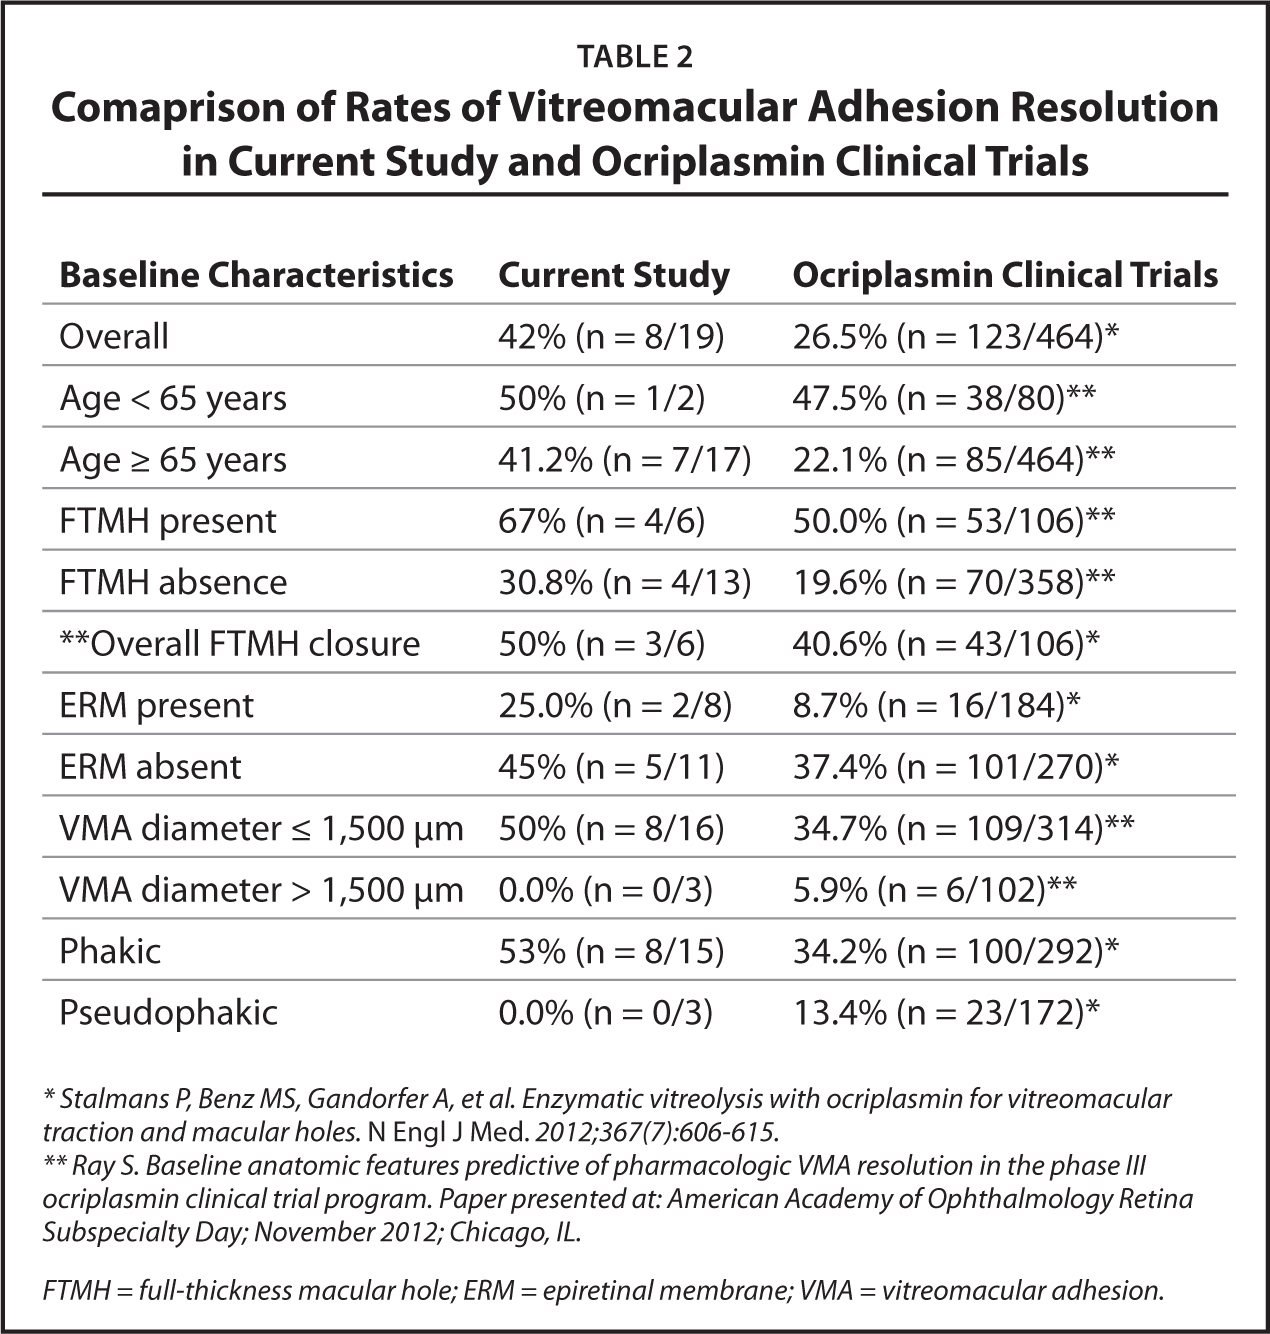 Comaprison of Rates of Vitreomacular Adhesion Resolution in Current Study and Ocriplasmin Clinical Trials